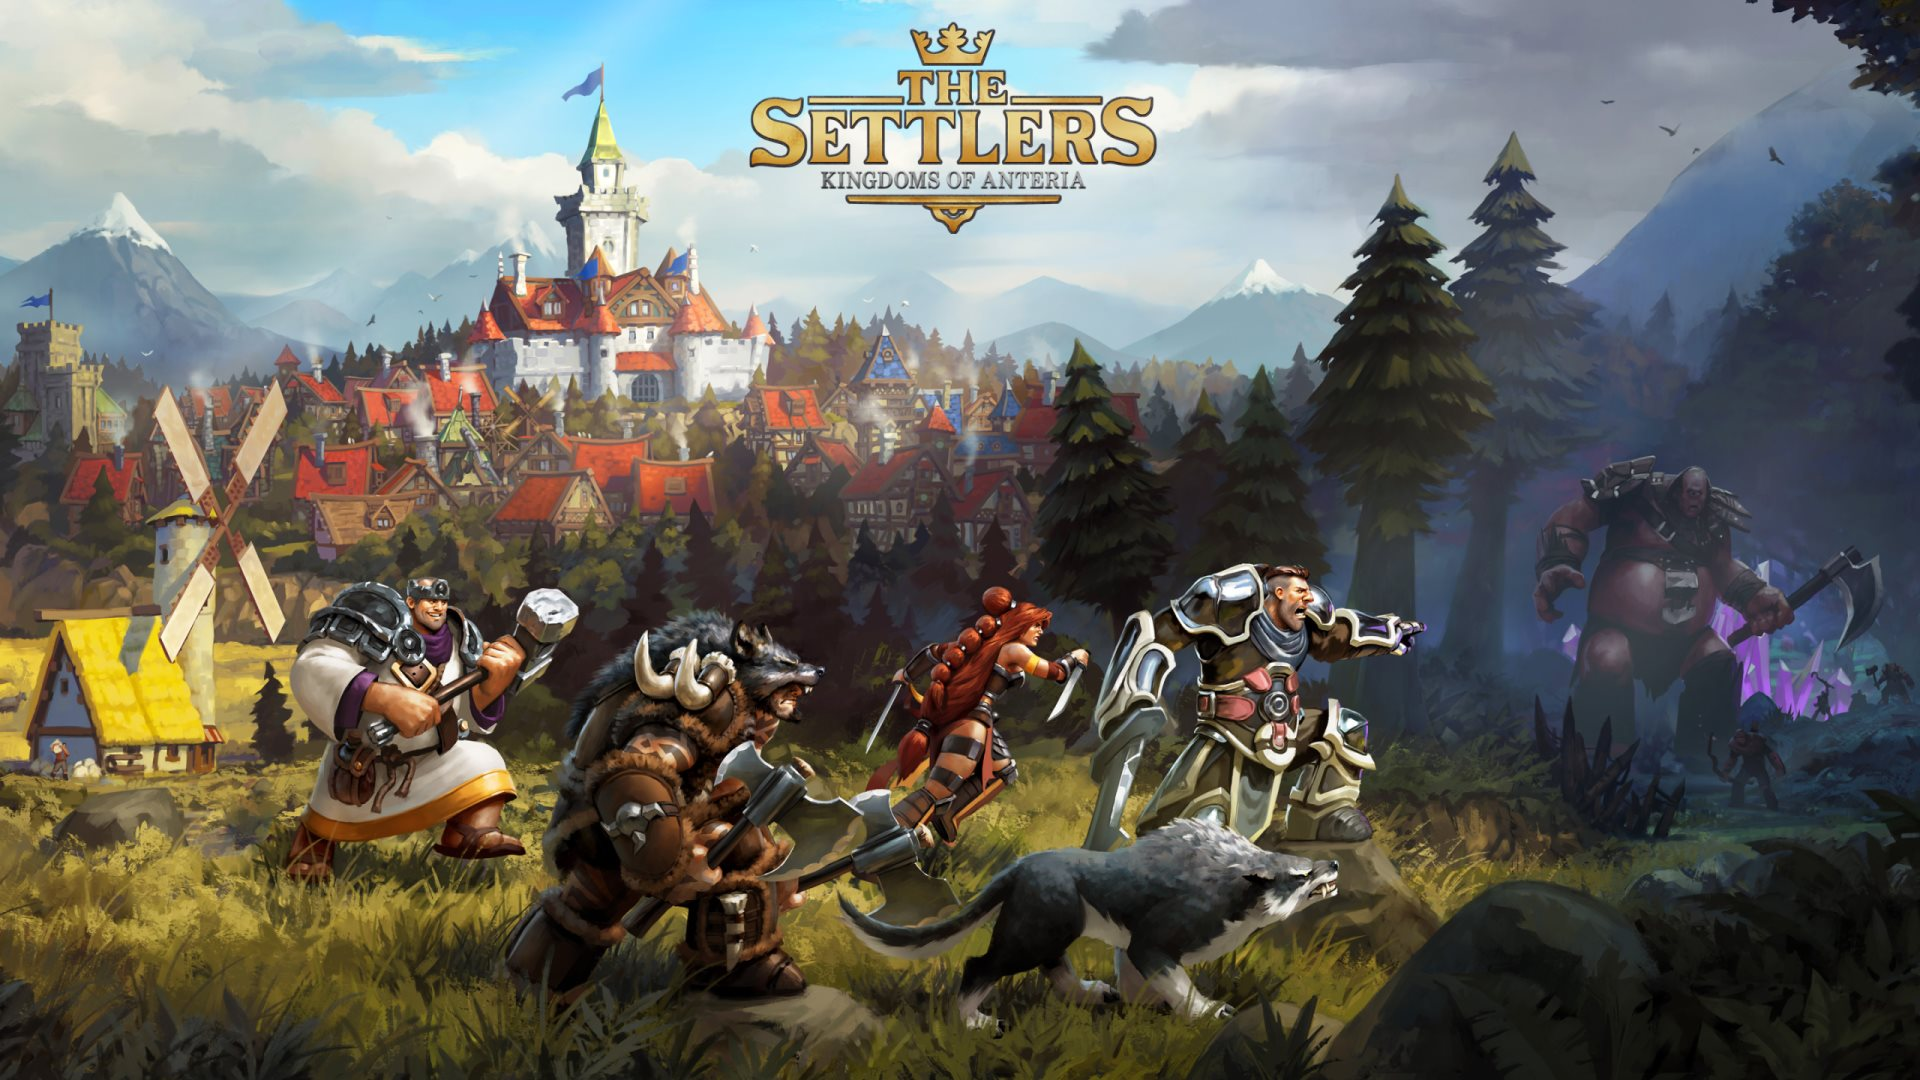 the settlers kingdoms of anteria wallpapers - The Settlers Kingdoms of Anteria Wallpapers HD Wallpapers